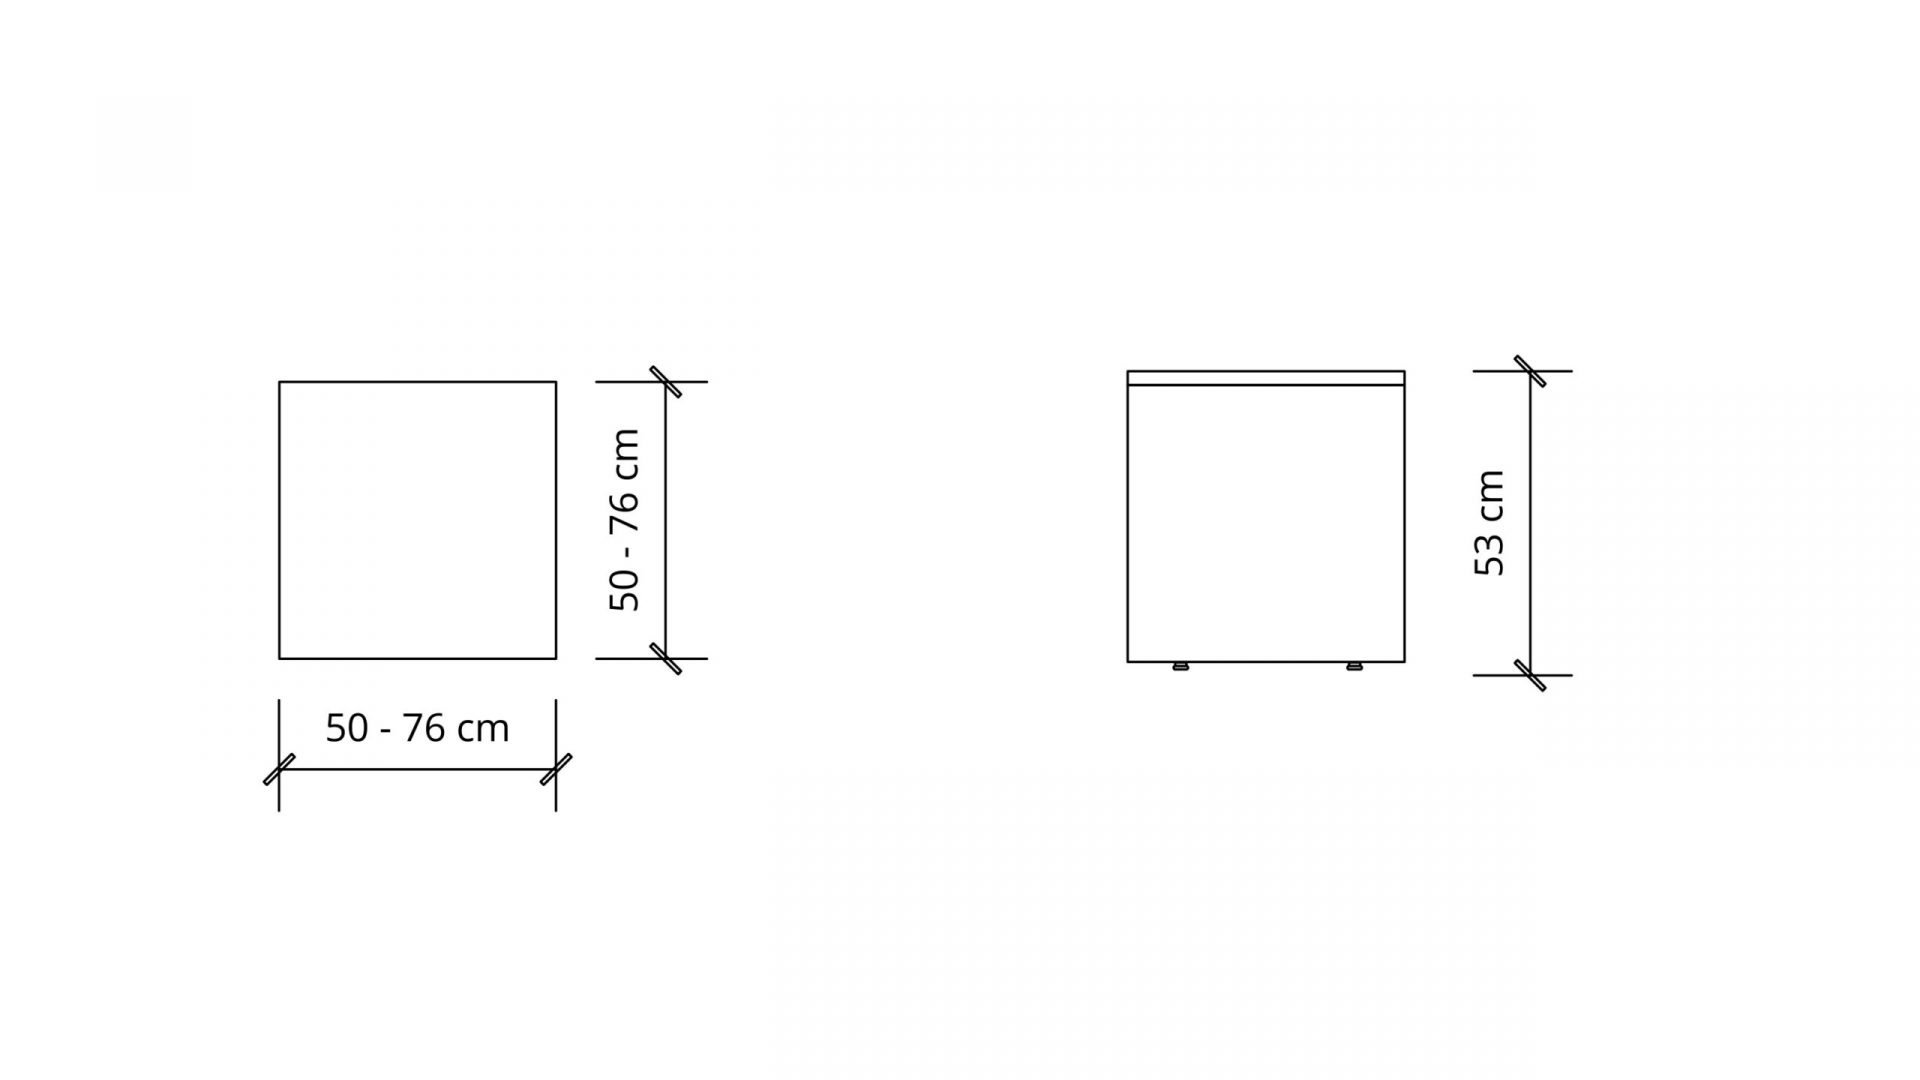 Dimensions of Square Coffee Table 1650